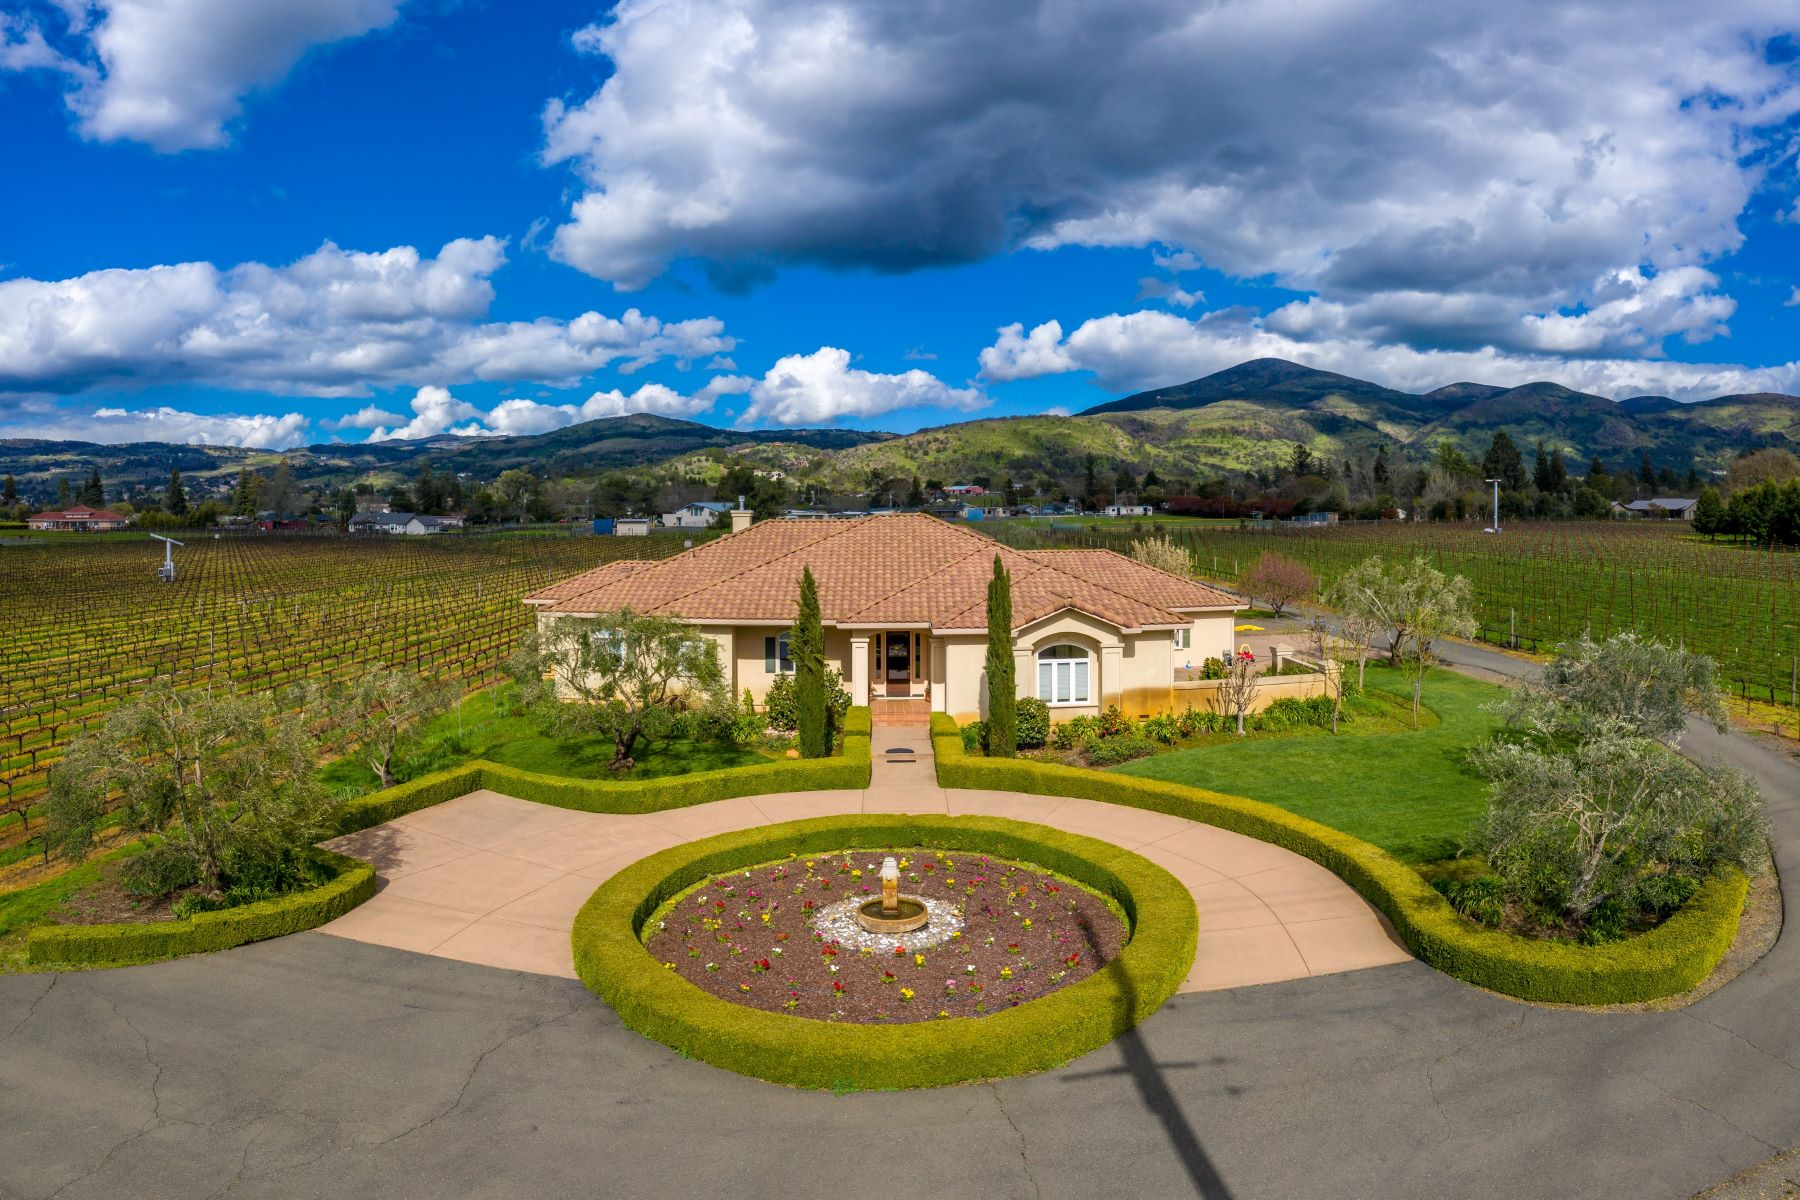 Single Family Homes for Sale at Seclusion and Convenience 1291 Monticello Rd Napa, California 94558 United States